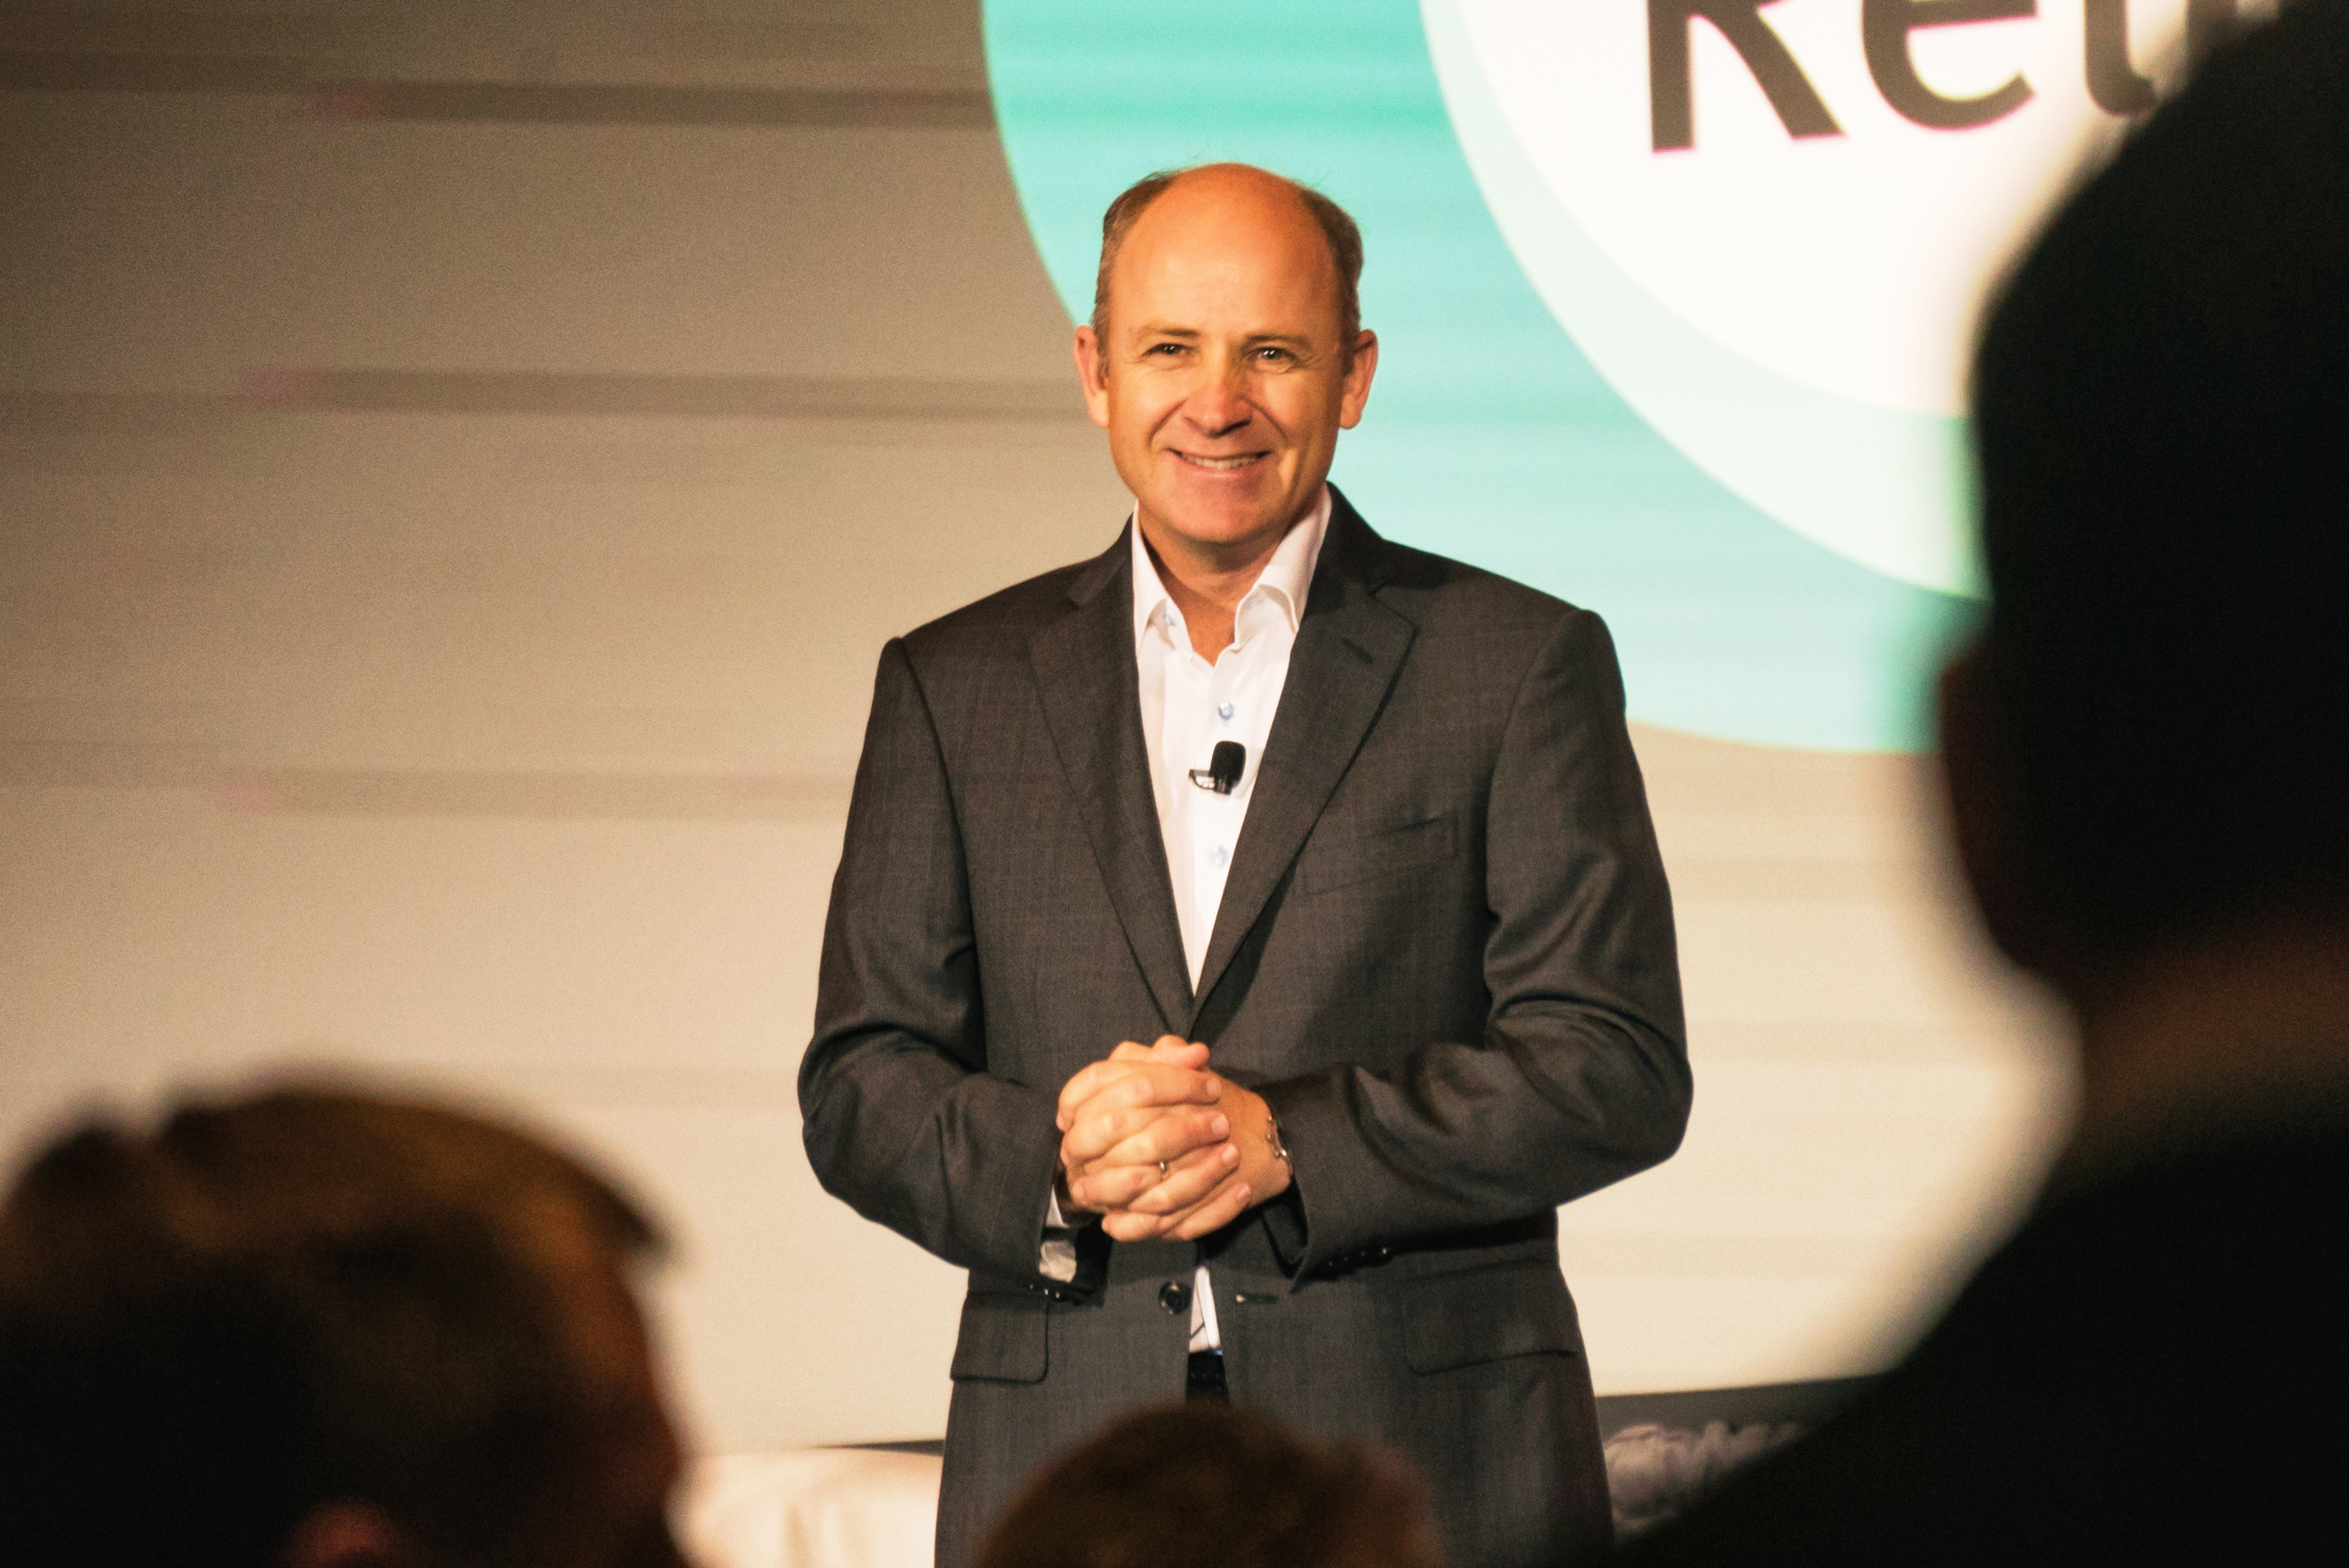 New Relic founder and CEO Lew Cirne.